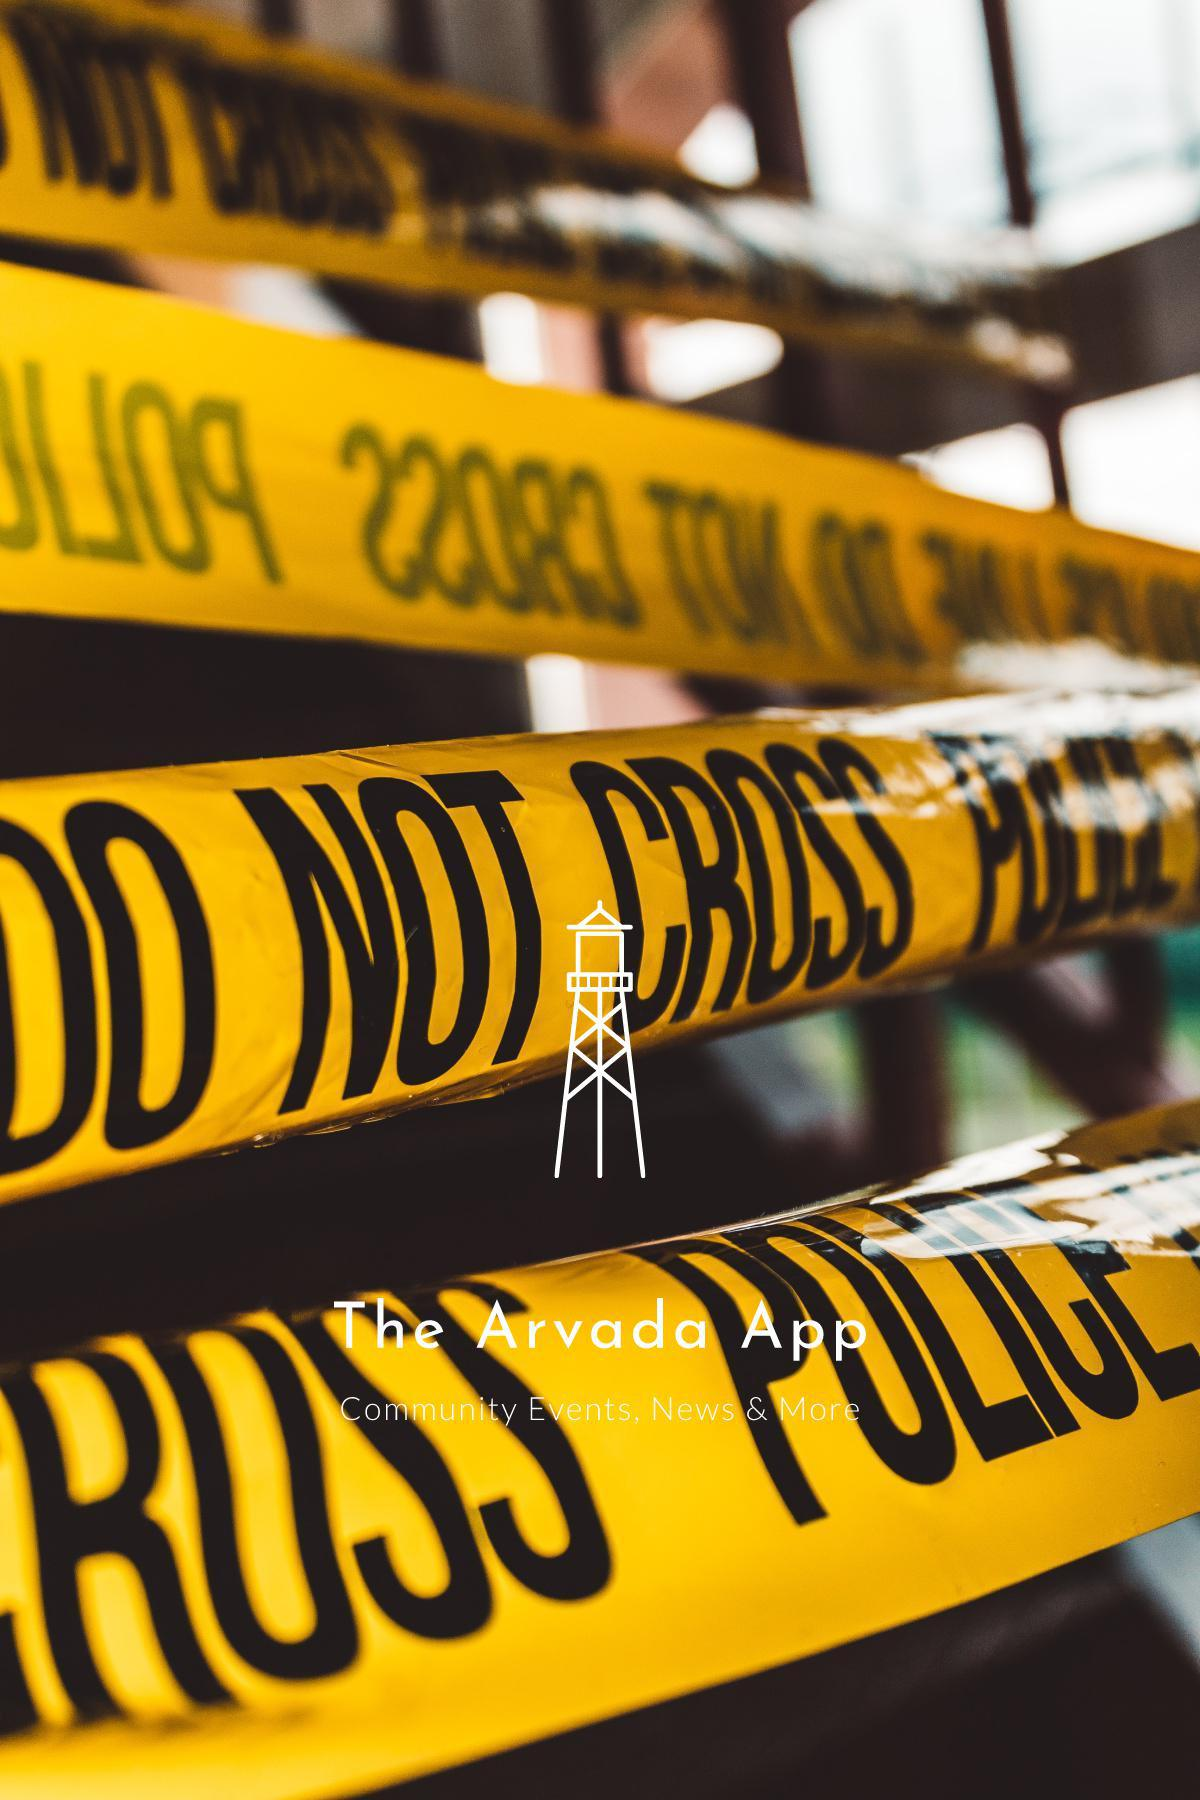 The Arvada Crime Report - October 19th: Overall crime down as compared to the past several weeks in the same categories